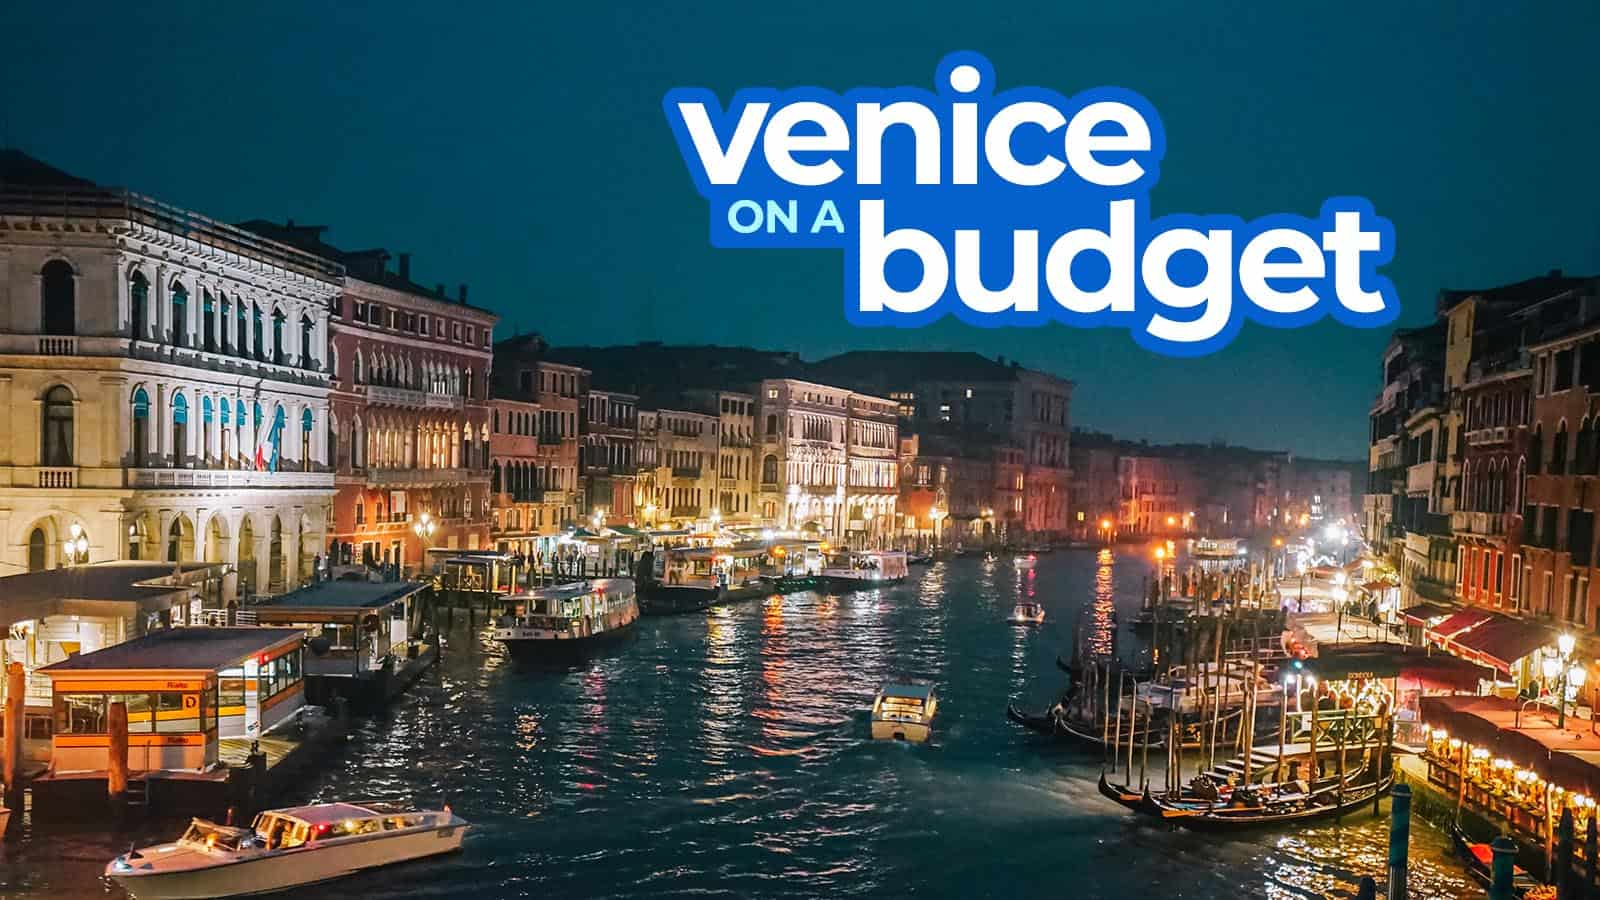 VENICE TRAVEL GUIDE: Itinerary, Budget, Things to Do